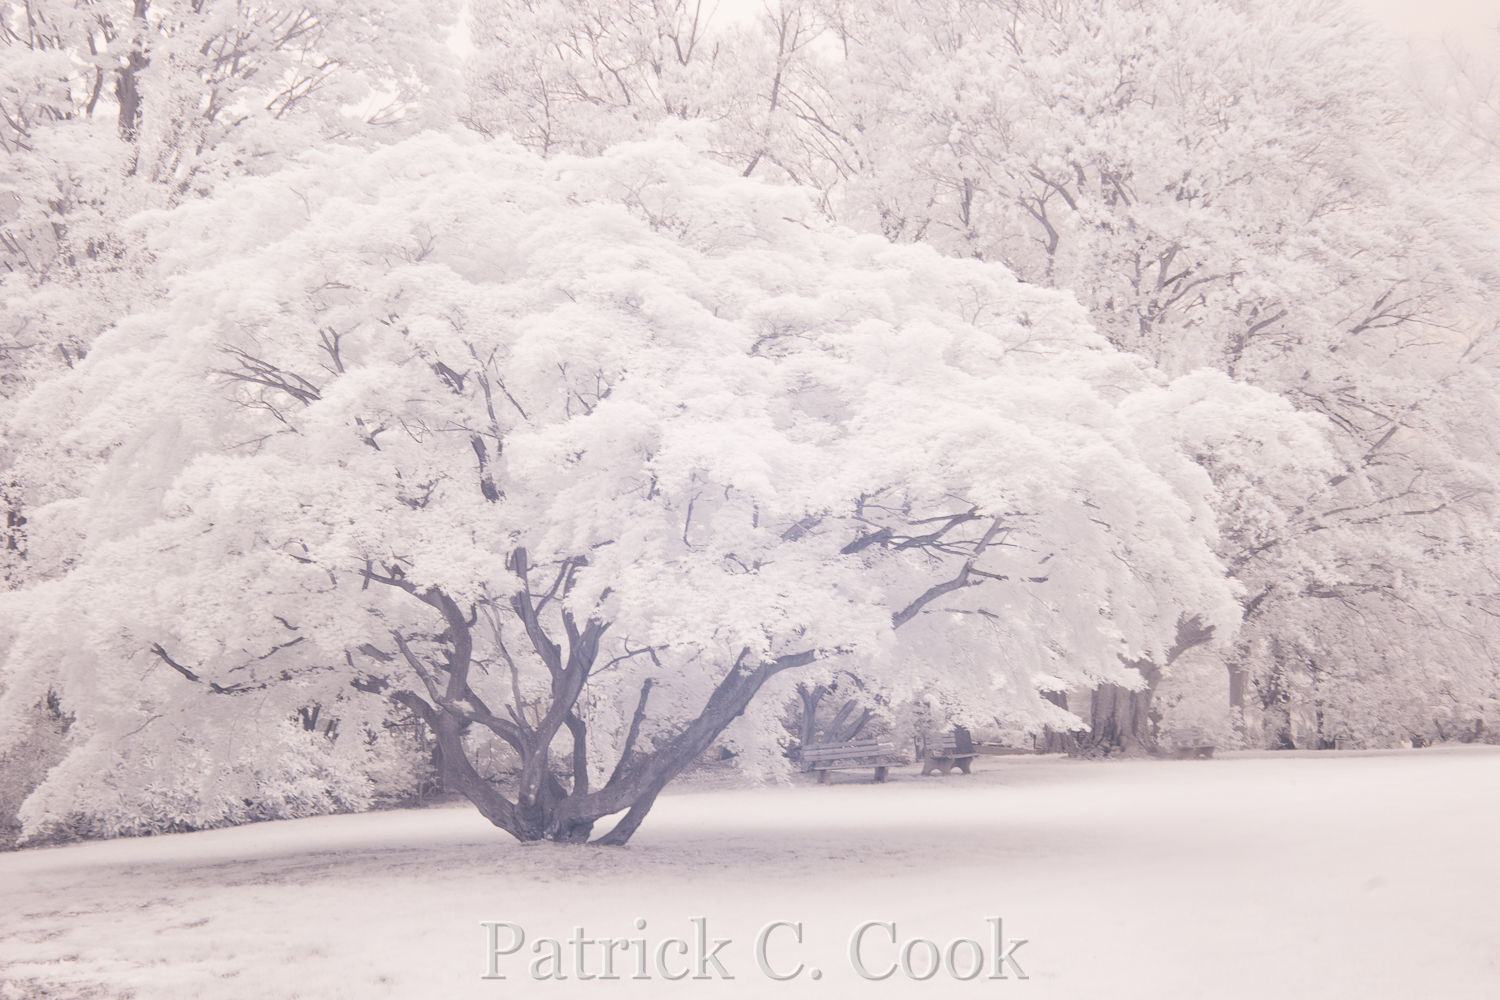 My very first digital infrared photo.